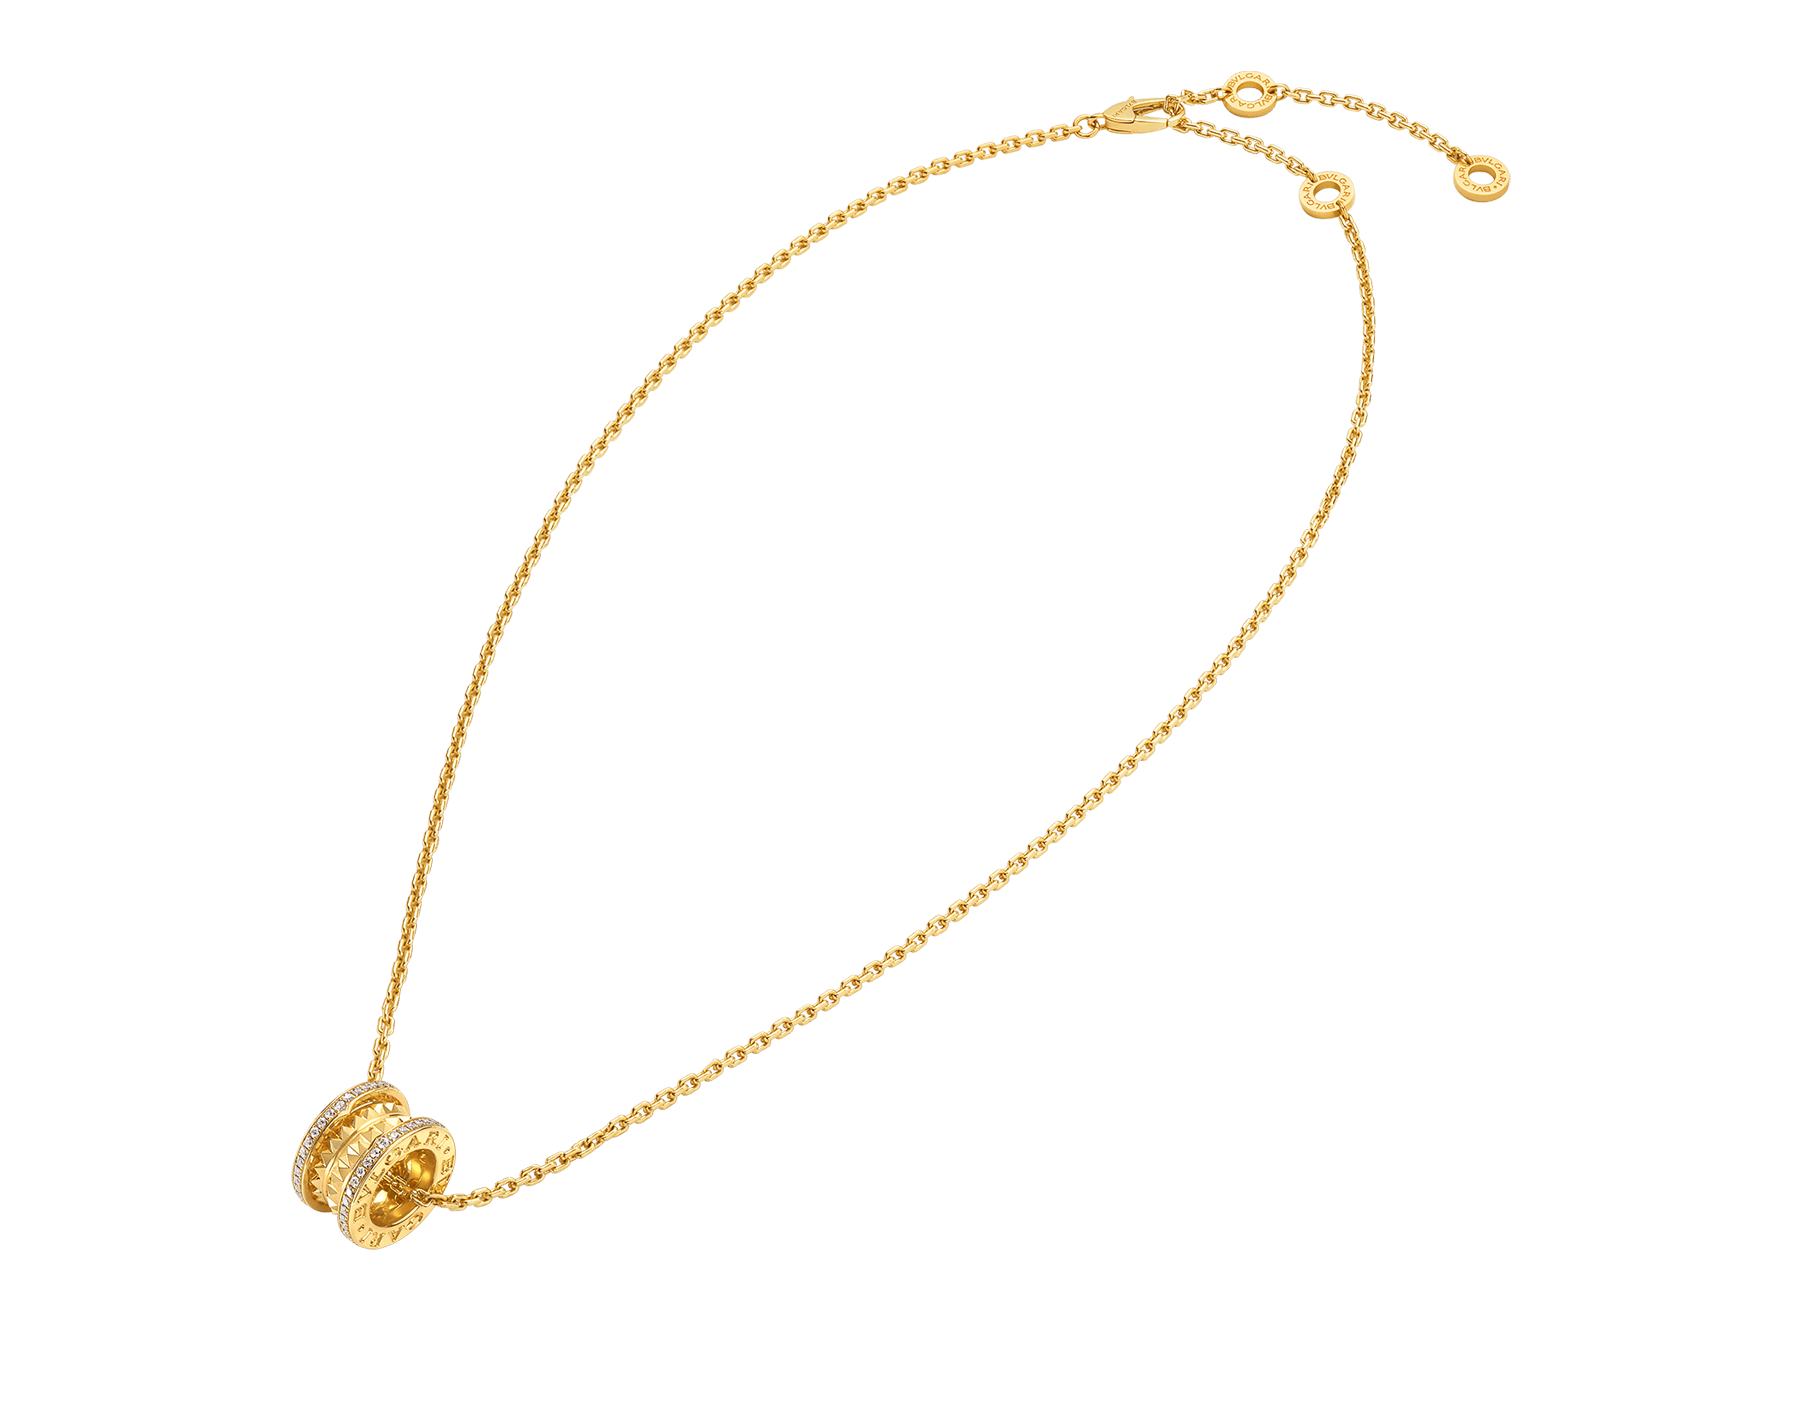 B.zero1 Rock necklace with 18 kt yellow gold pendant with studded spiral, pavé diamonds on the edges and 18 kt yellow gold chain 357885 image 2